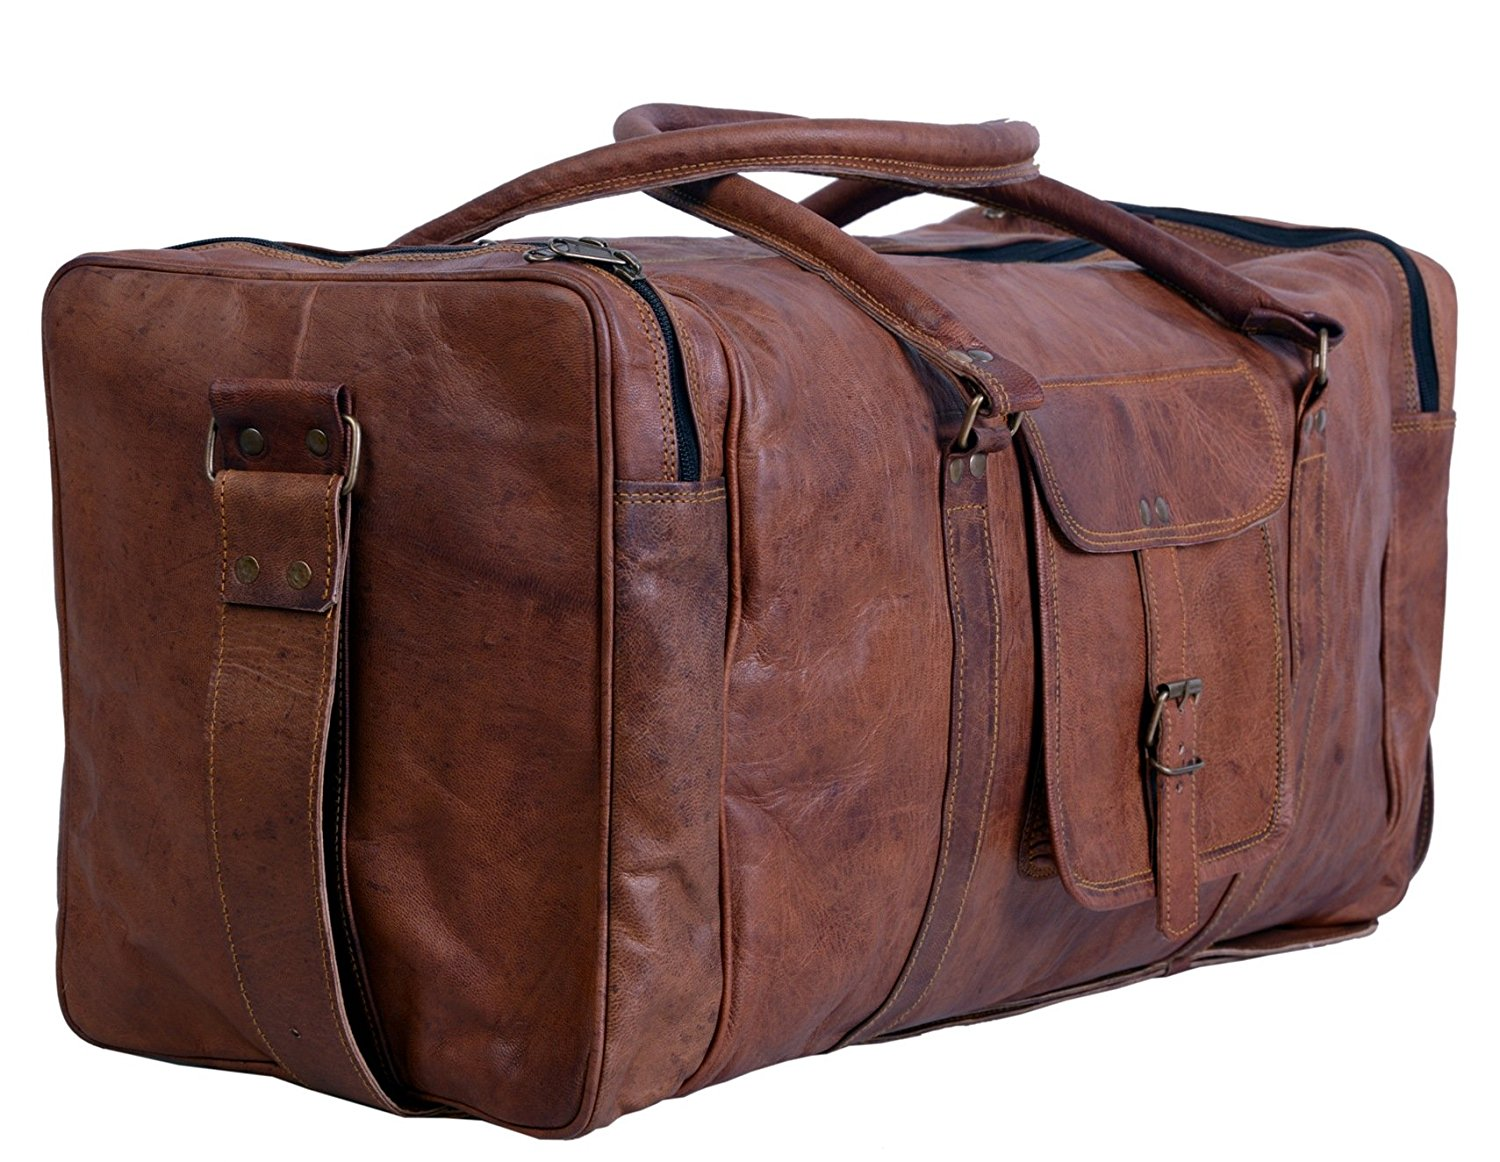 Komal's Passion Leather Duffel Bags